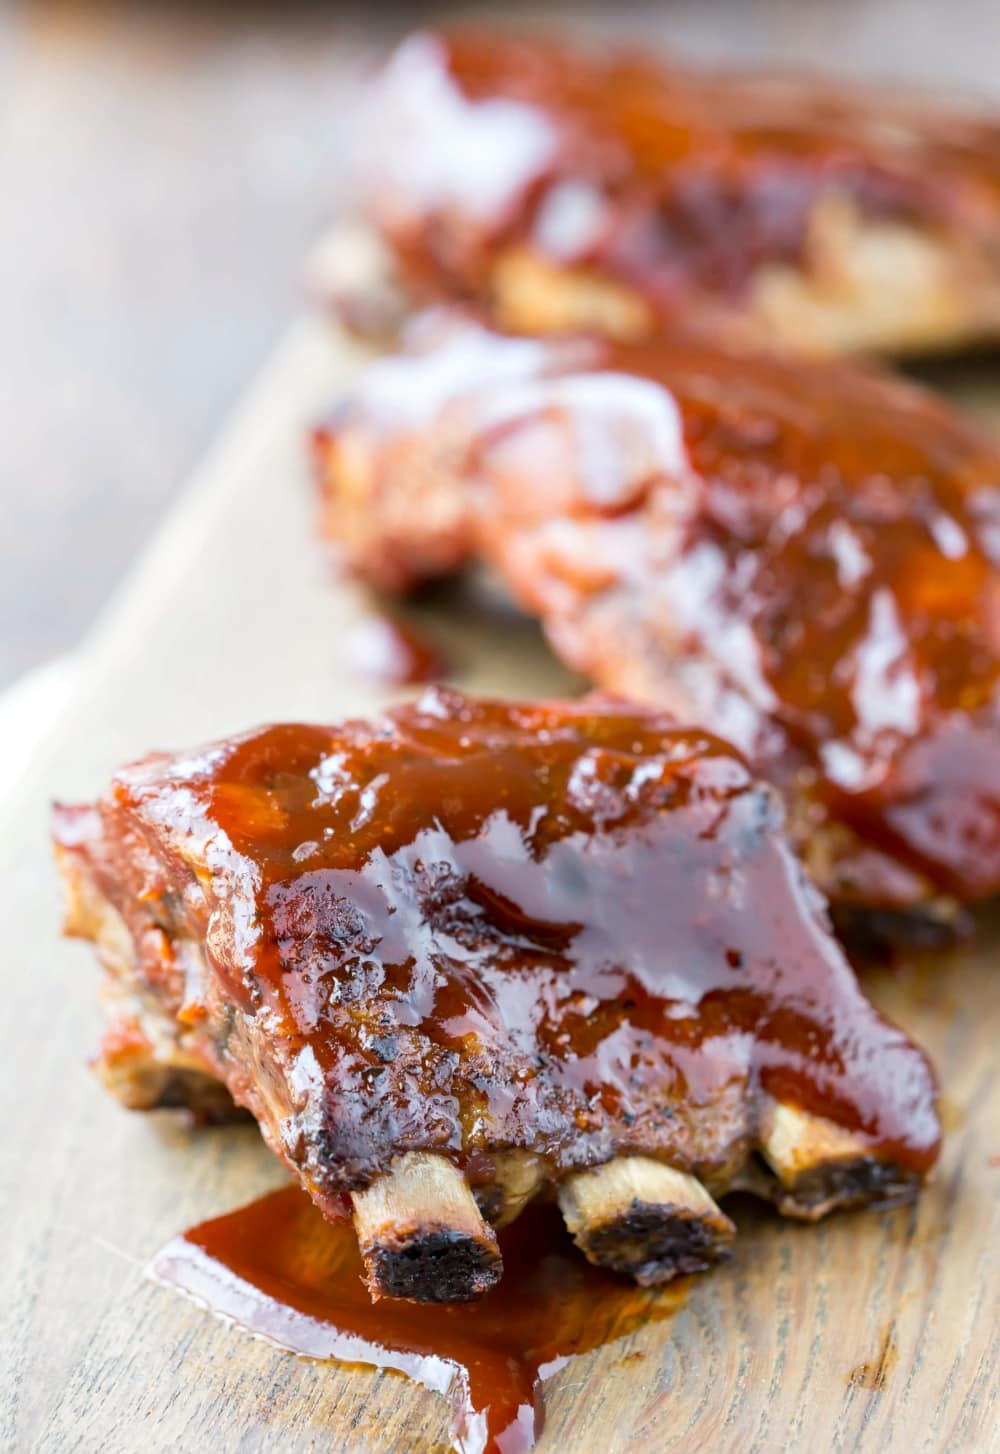 Homemade Kansas City Style Barbecue Sauce on ribs